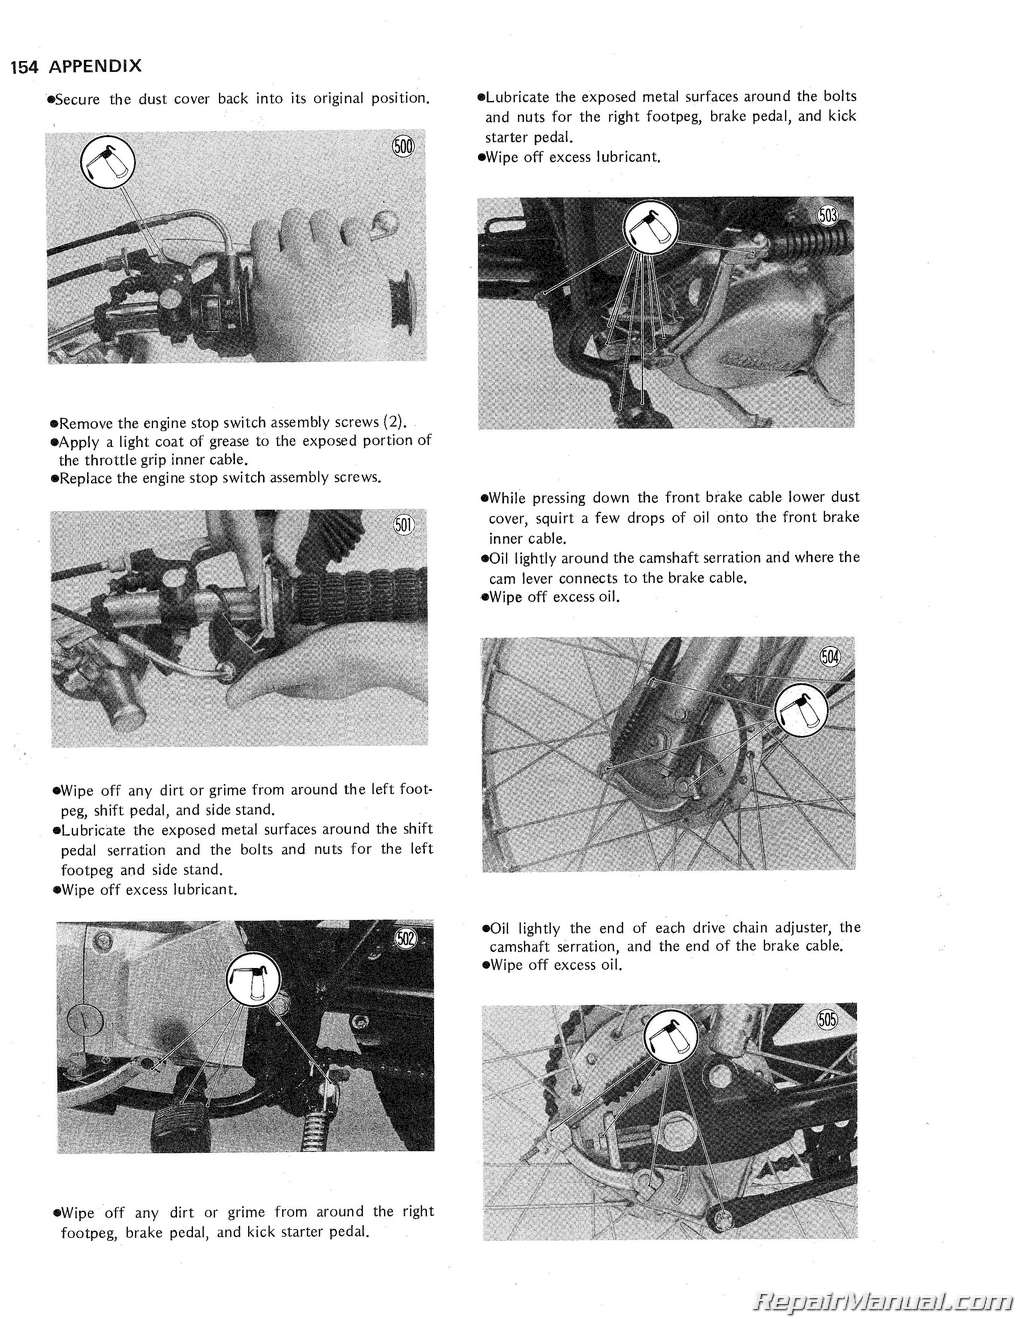 Mercury 1974 850 Ignition Problem Page 1 Manual Guide